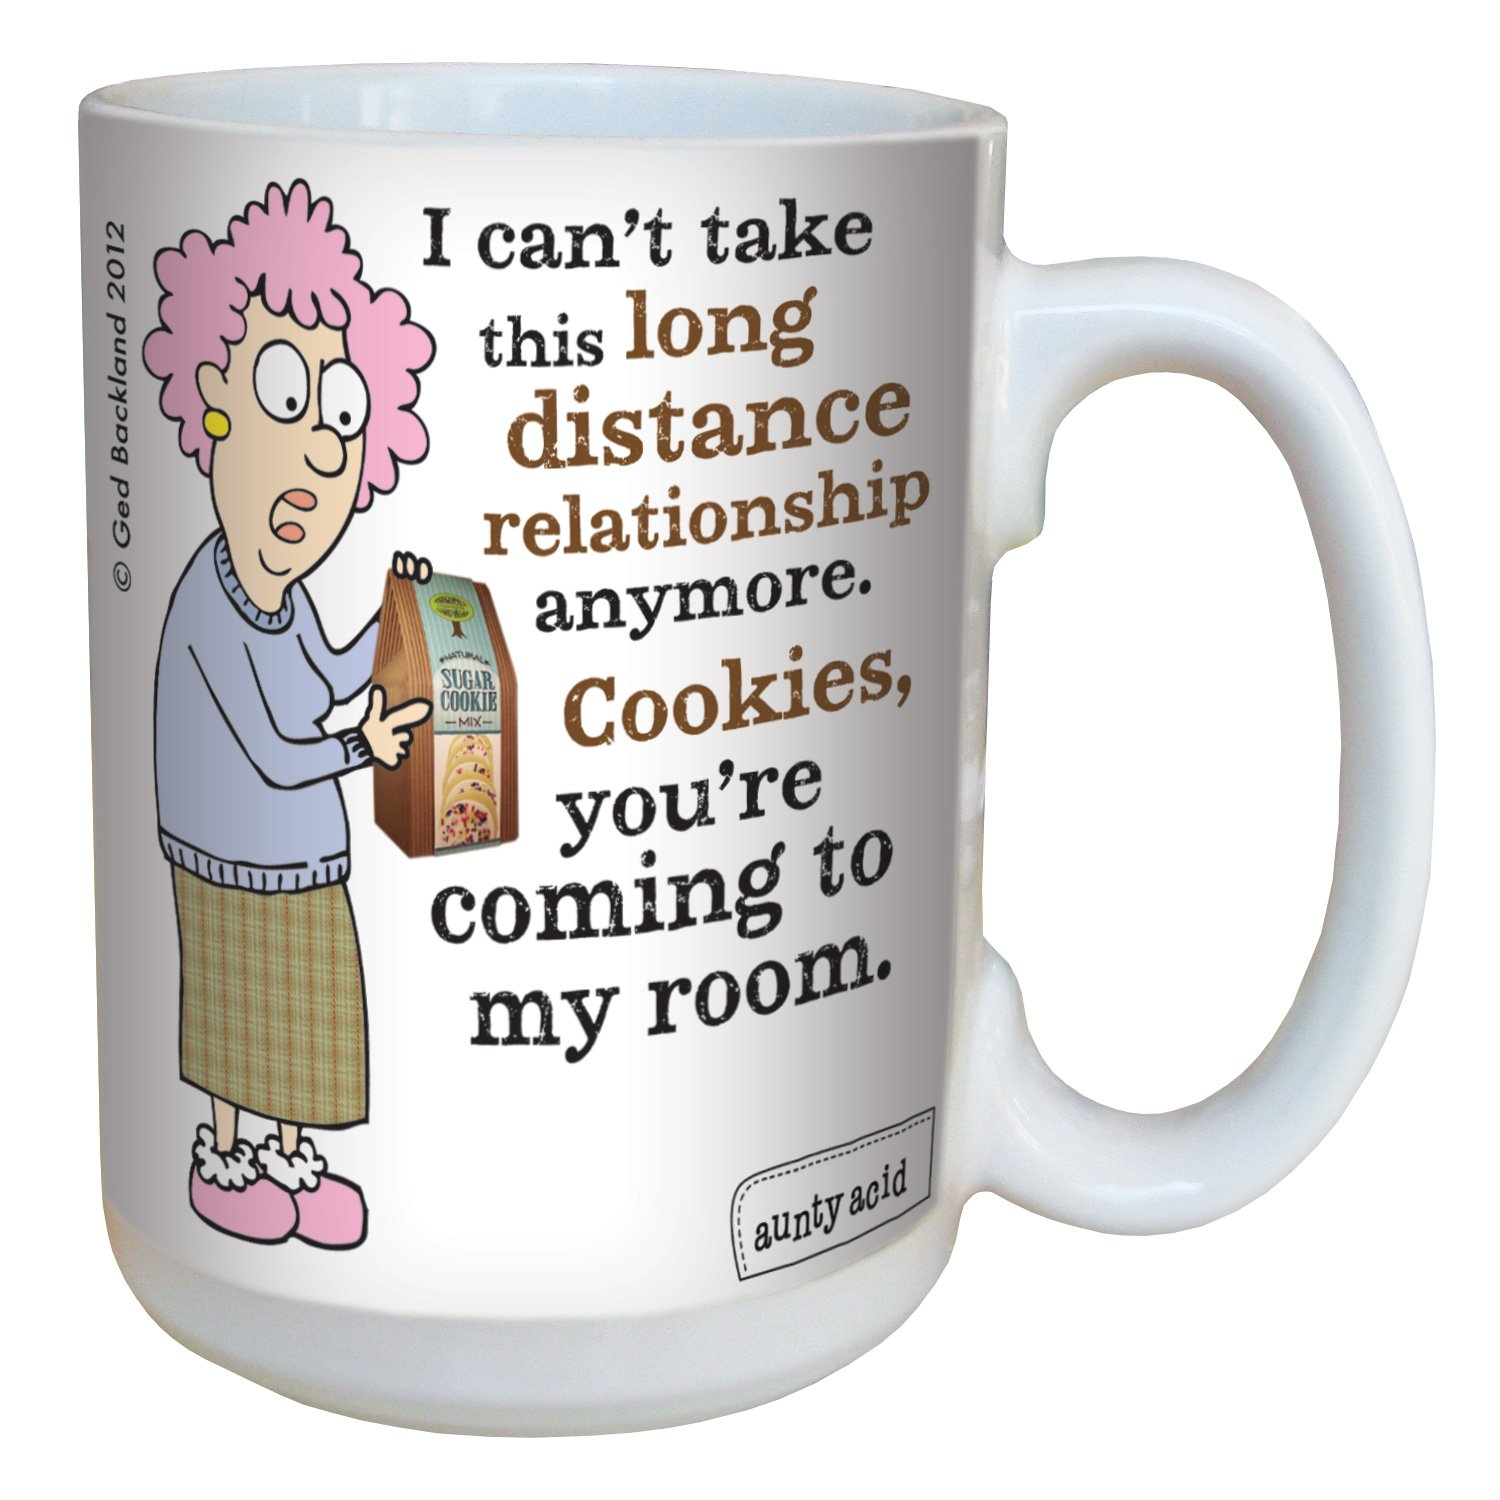 15-Ounce Tree-Free Greetings lm43827 Hilarious Aunty Acid Long Distance Relationships by The Backland Studio Ceramic Mug